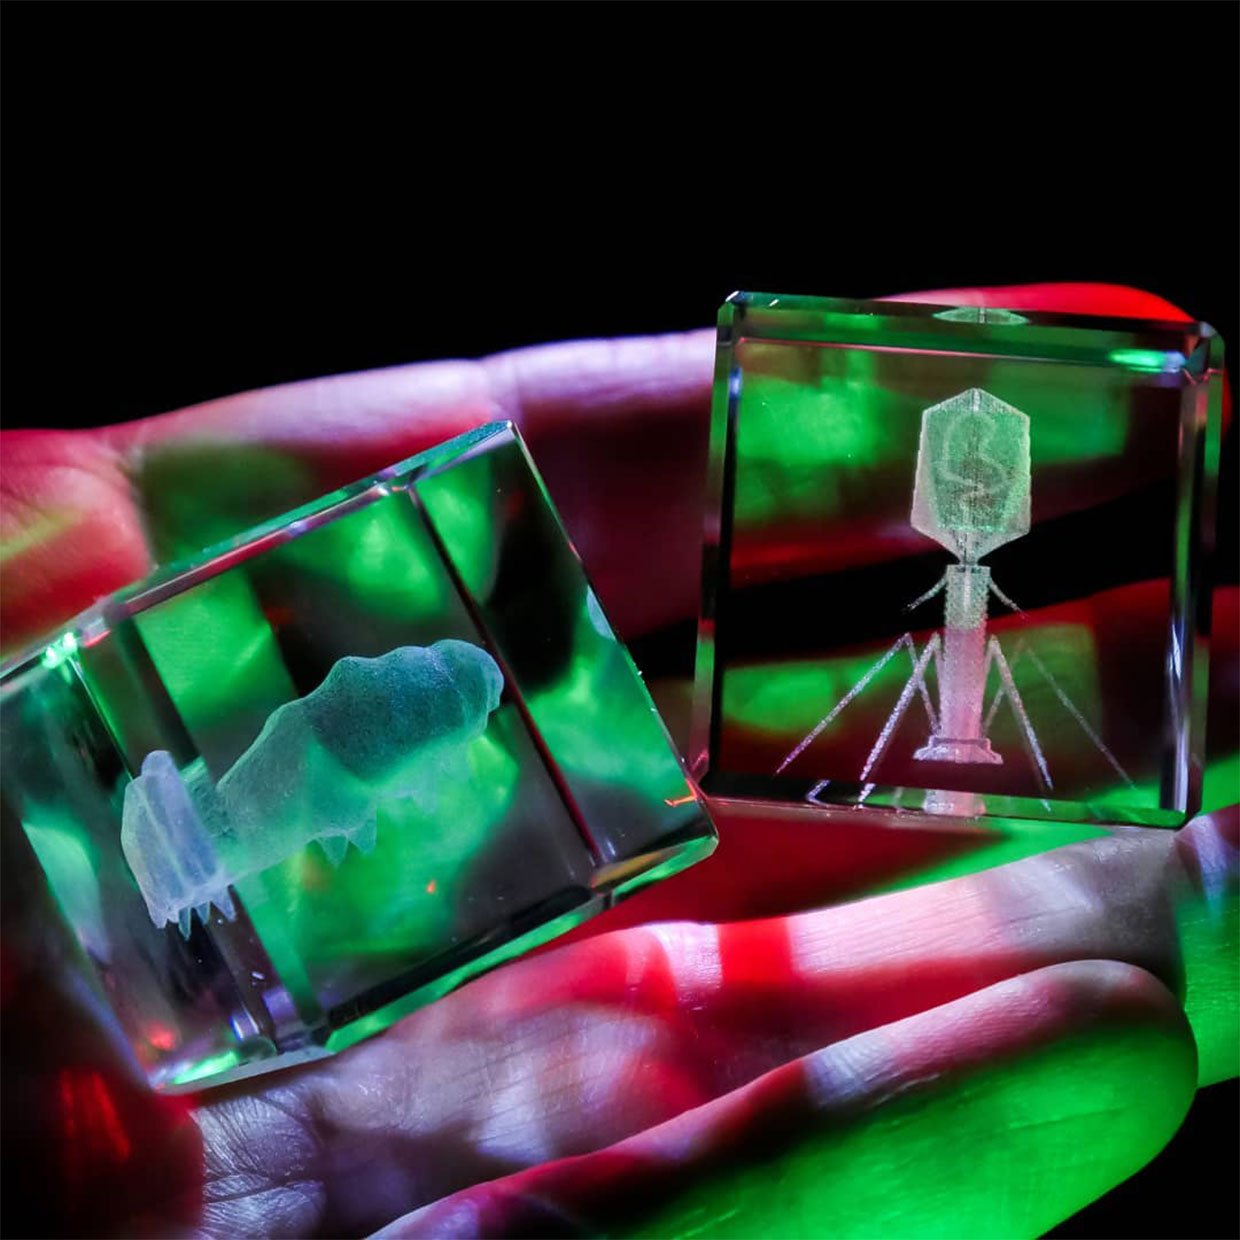 The Microcosm in Glass